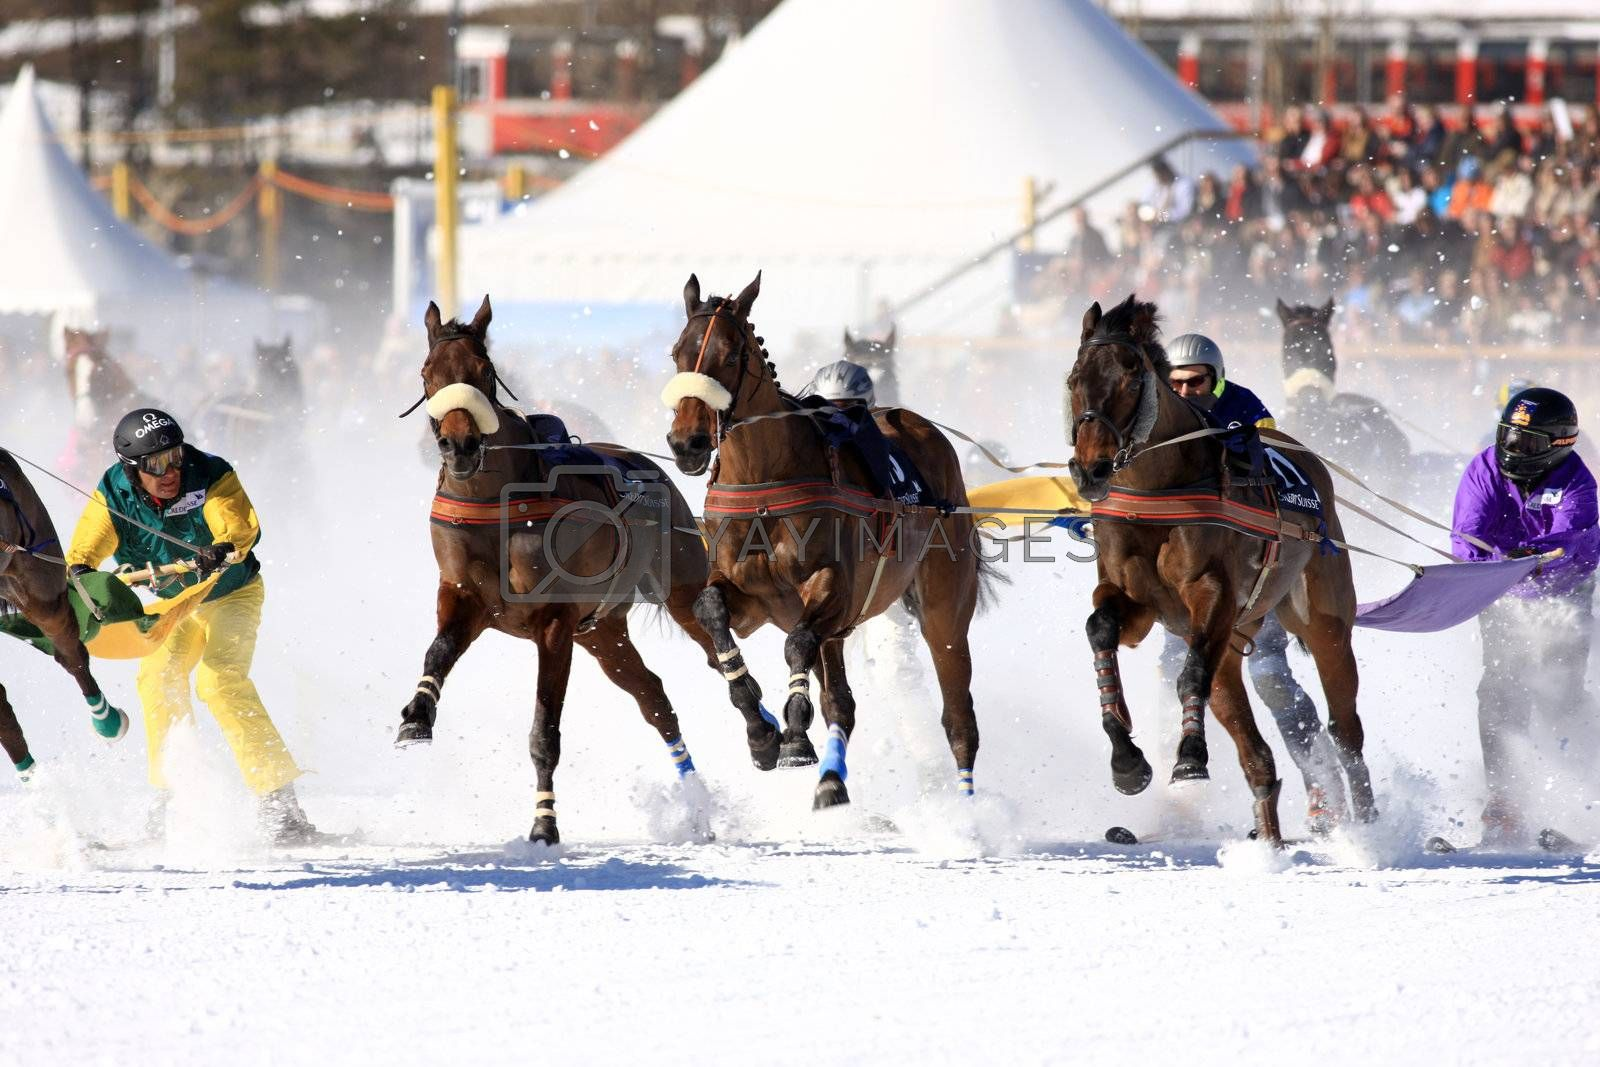 Royalty free image of White Turf 2008 in St. Moritz by monner